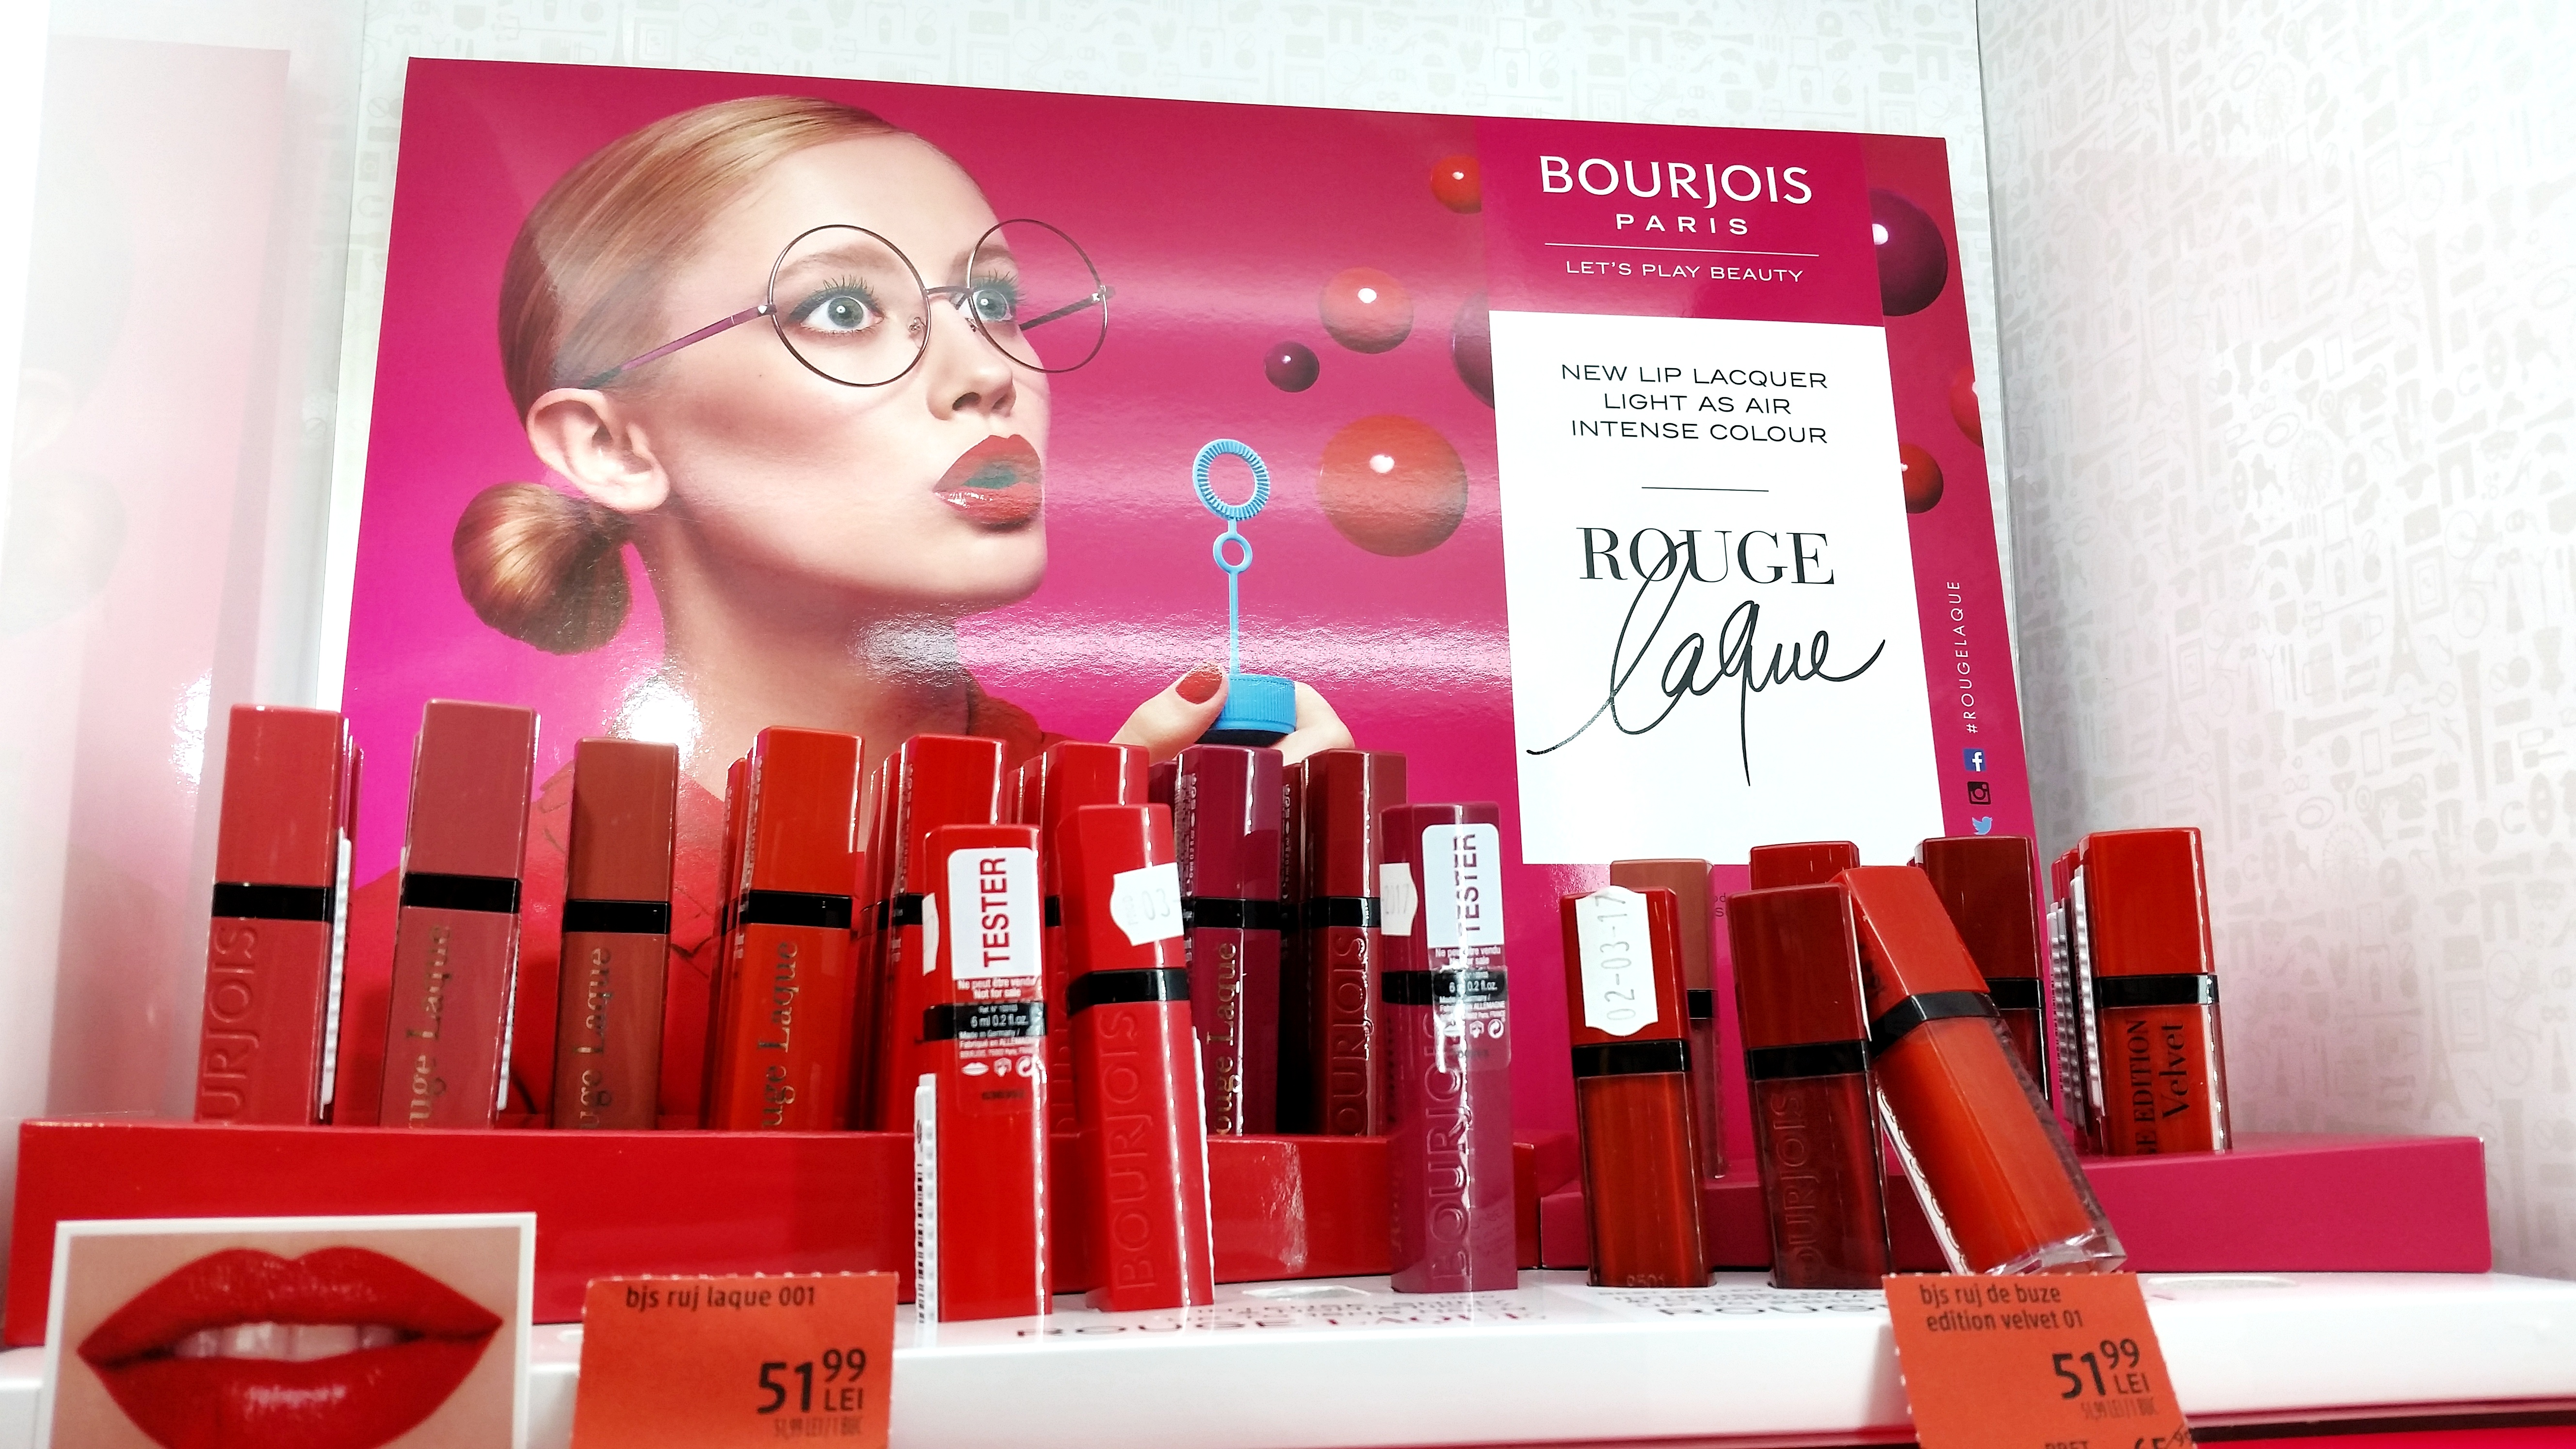 noutati-cosmetice-aprilie-2017-romania-beautyandatwist-new-launches-make-up-bourjois